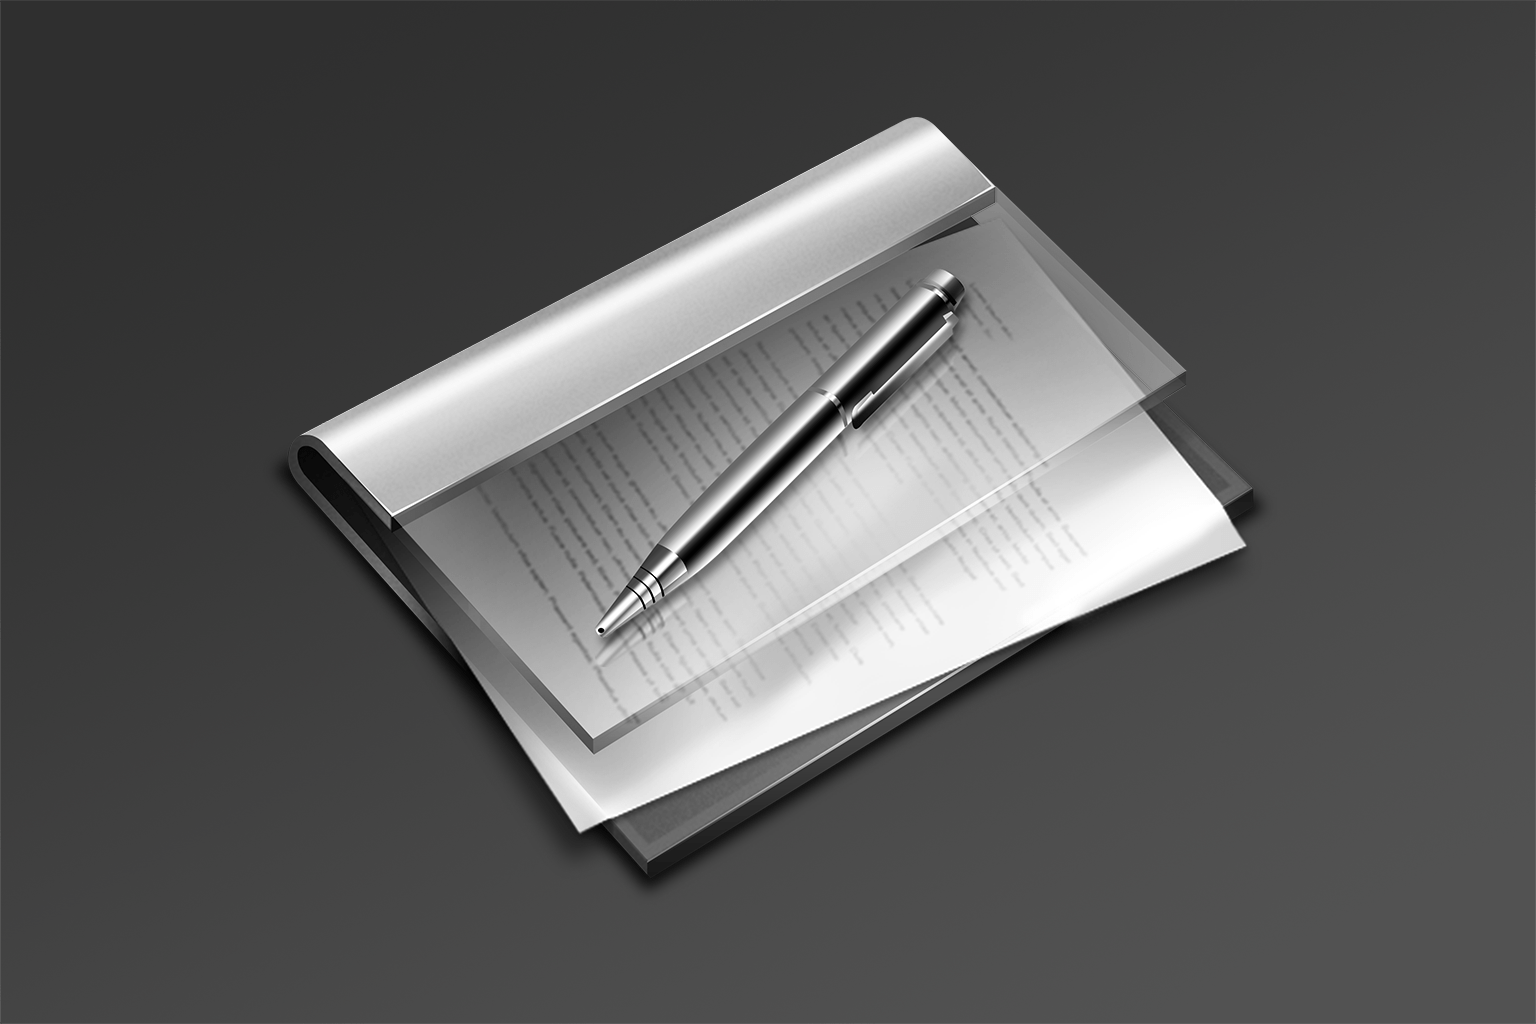 A skeuomorphic icon showing a binder full of notes along with a ballpoint pen, designed by Emanuel